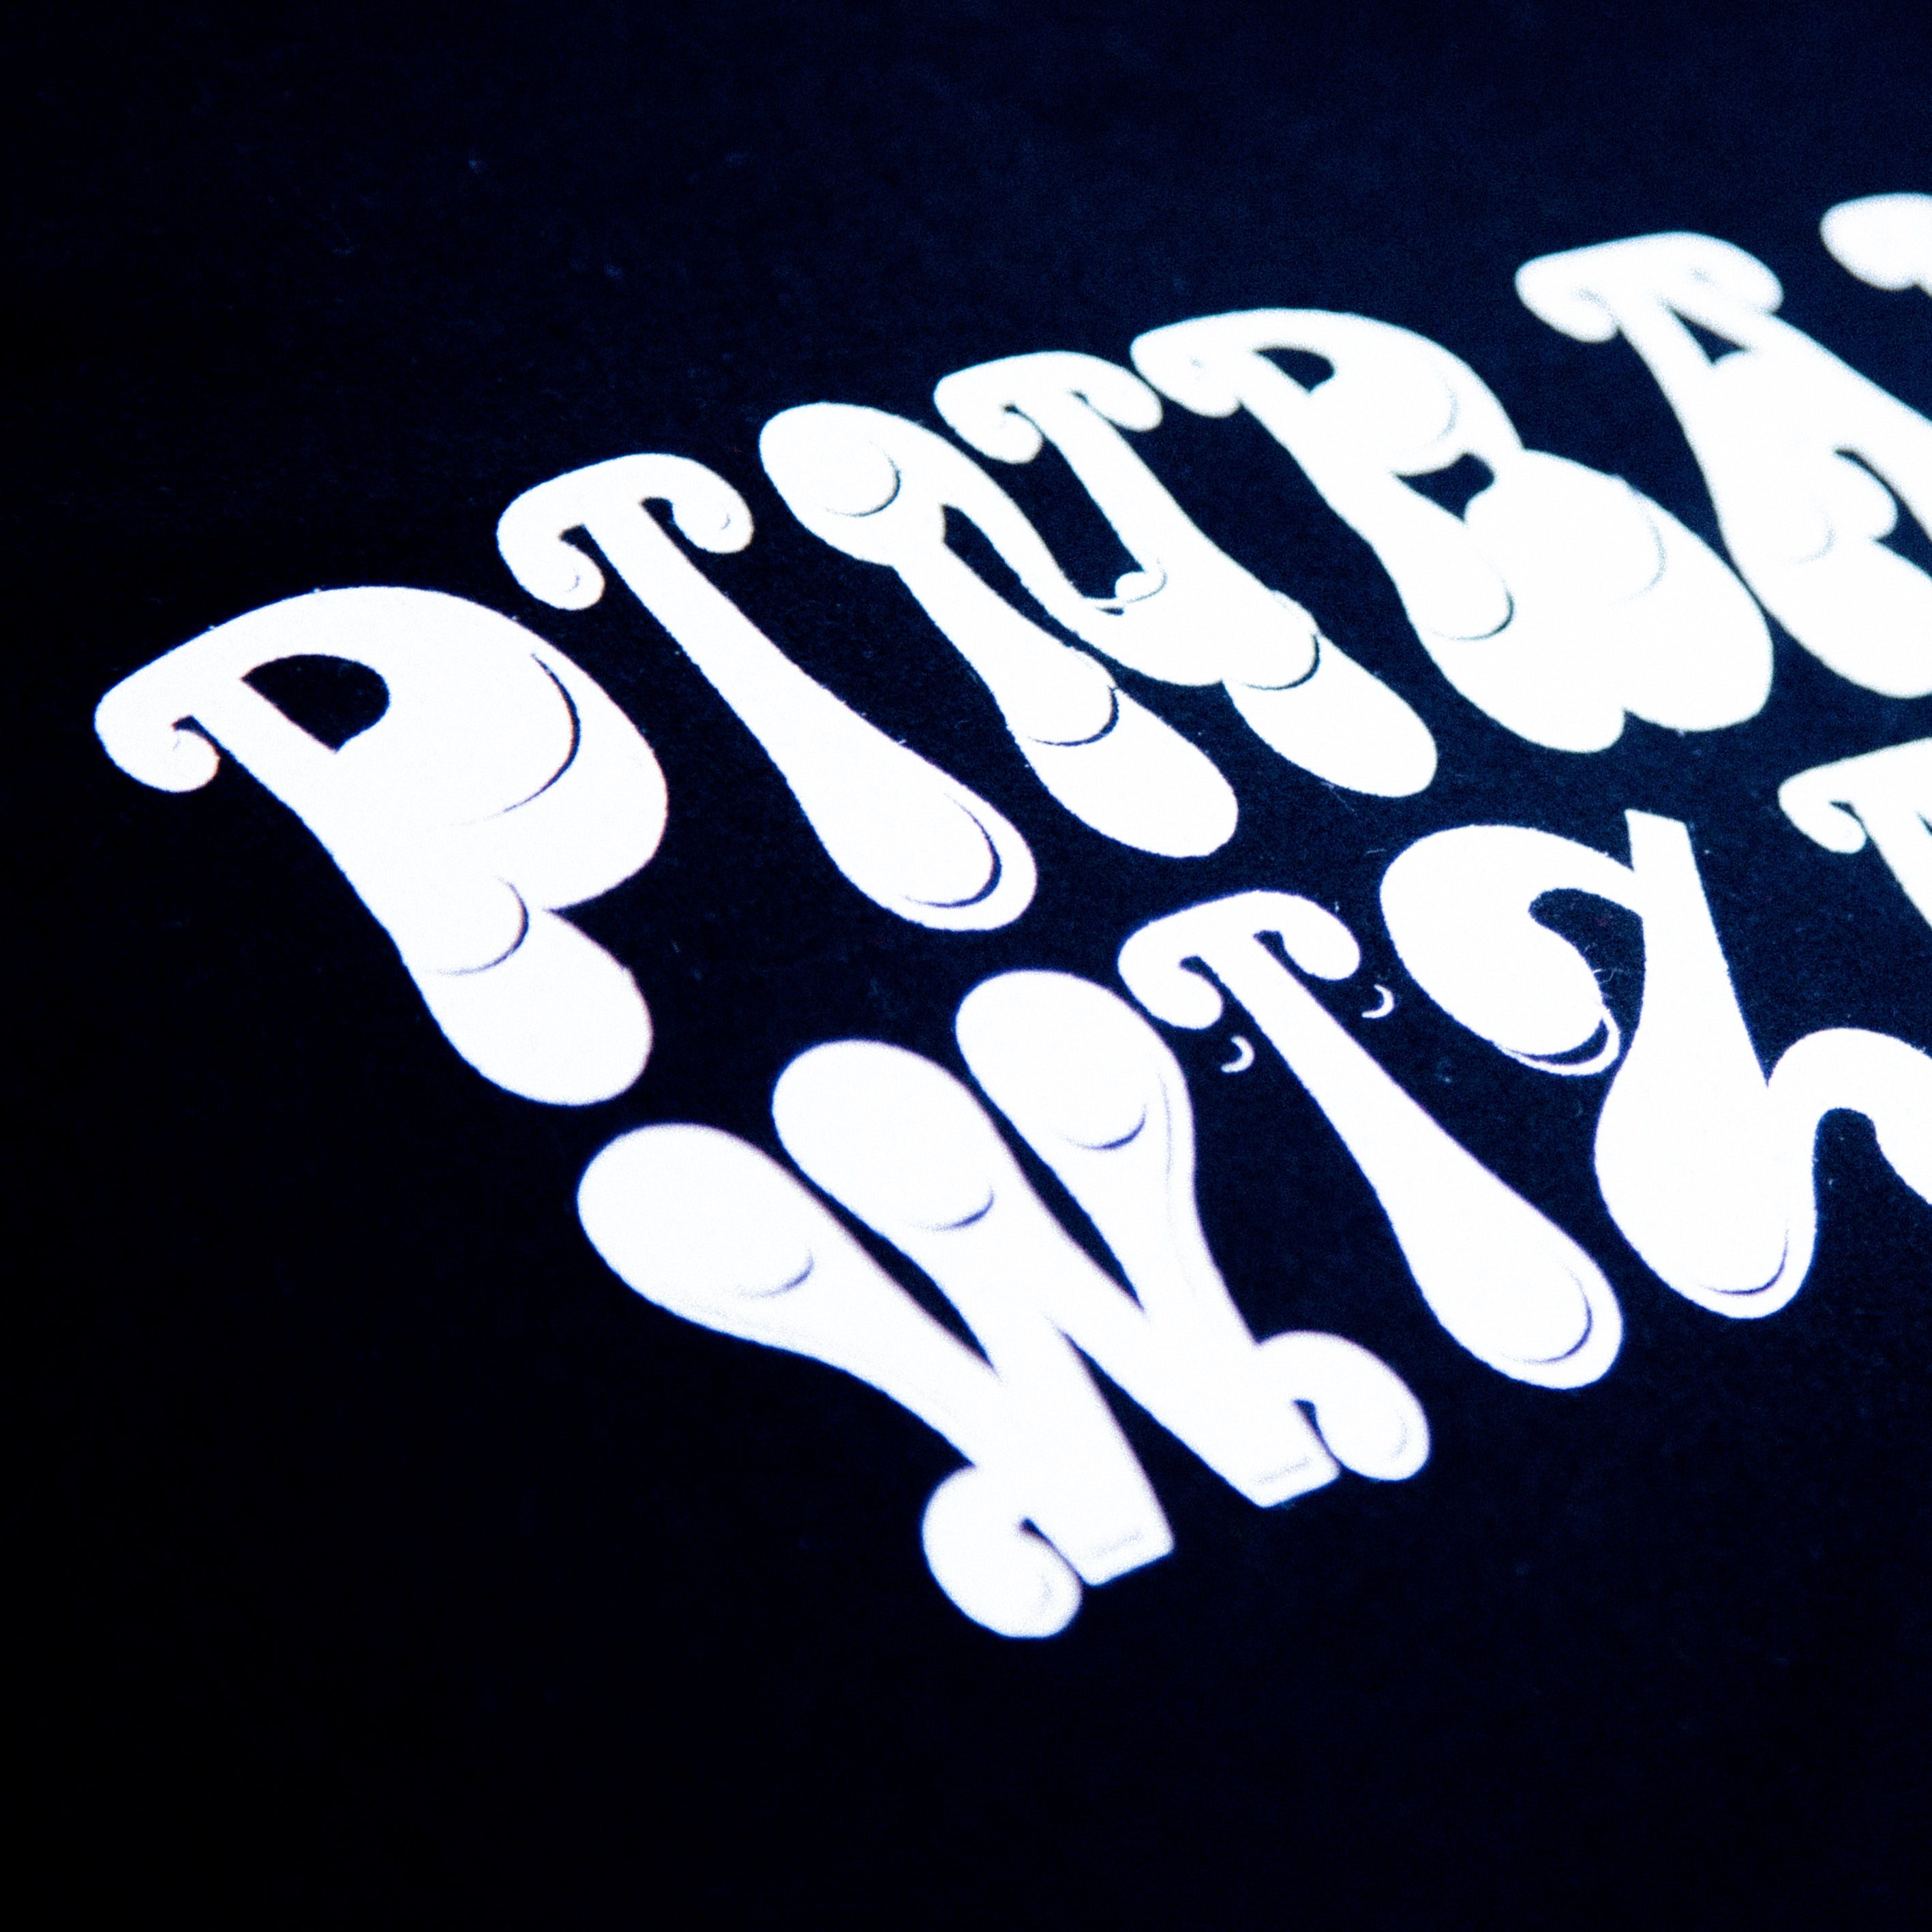 Limited Edition Pinball Wizard T-Shirt - Black